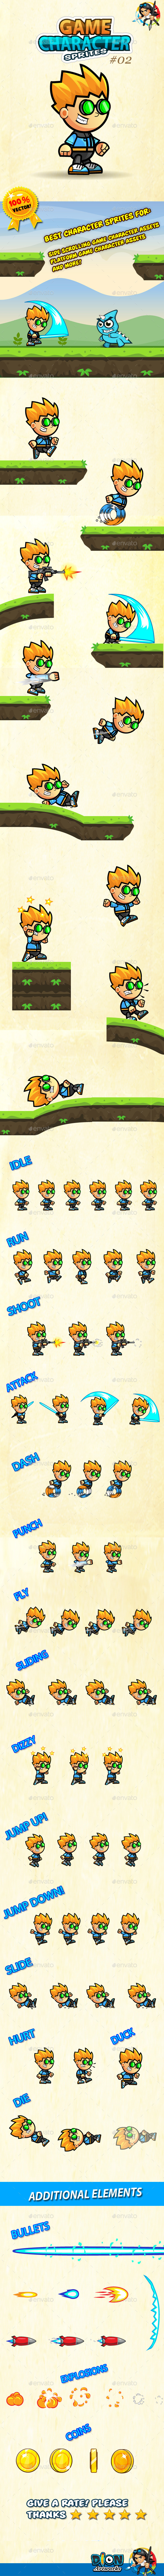 GraphicRiver Game Character Sprites 02 10488558